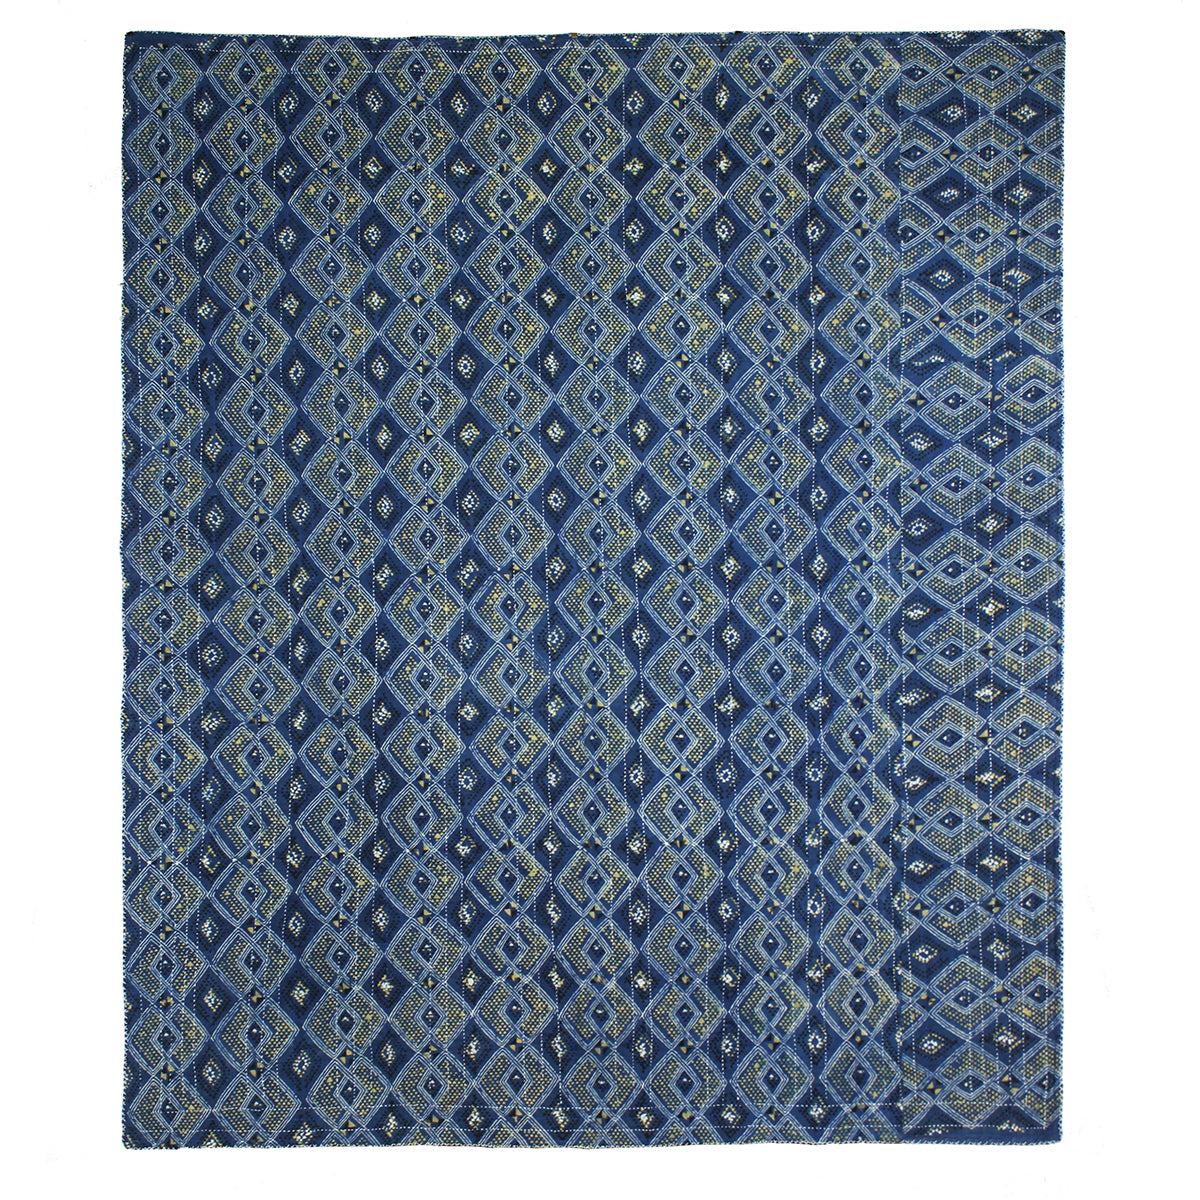 Revers of indigo dyed woven quilt